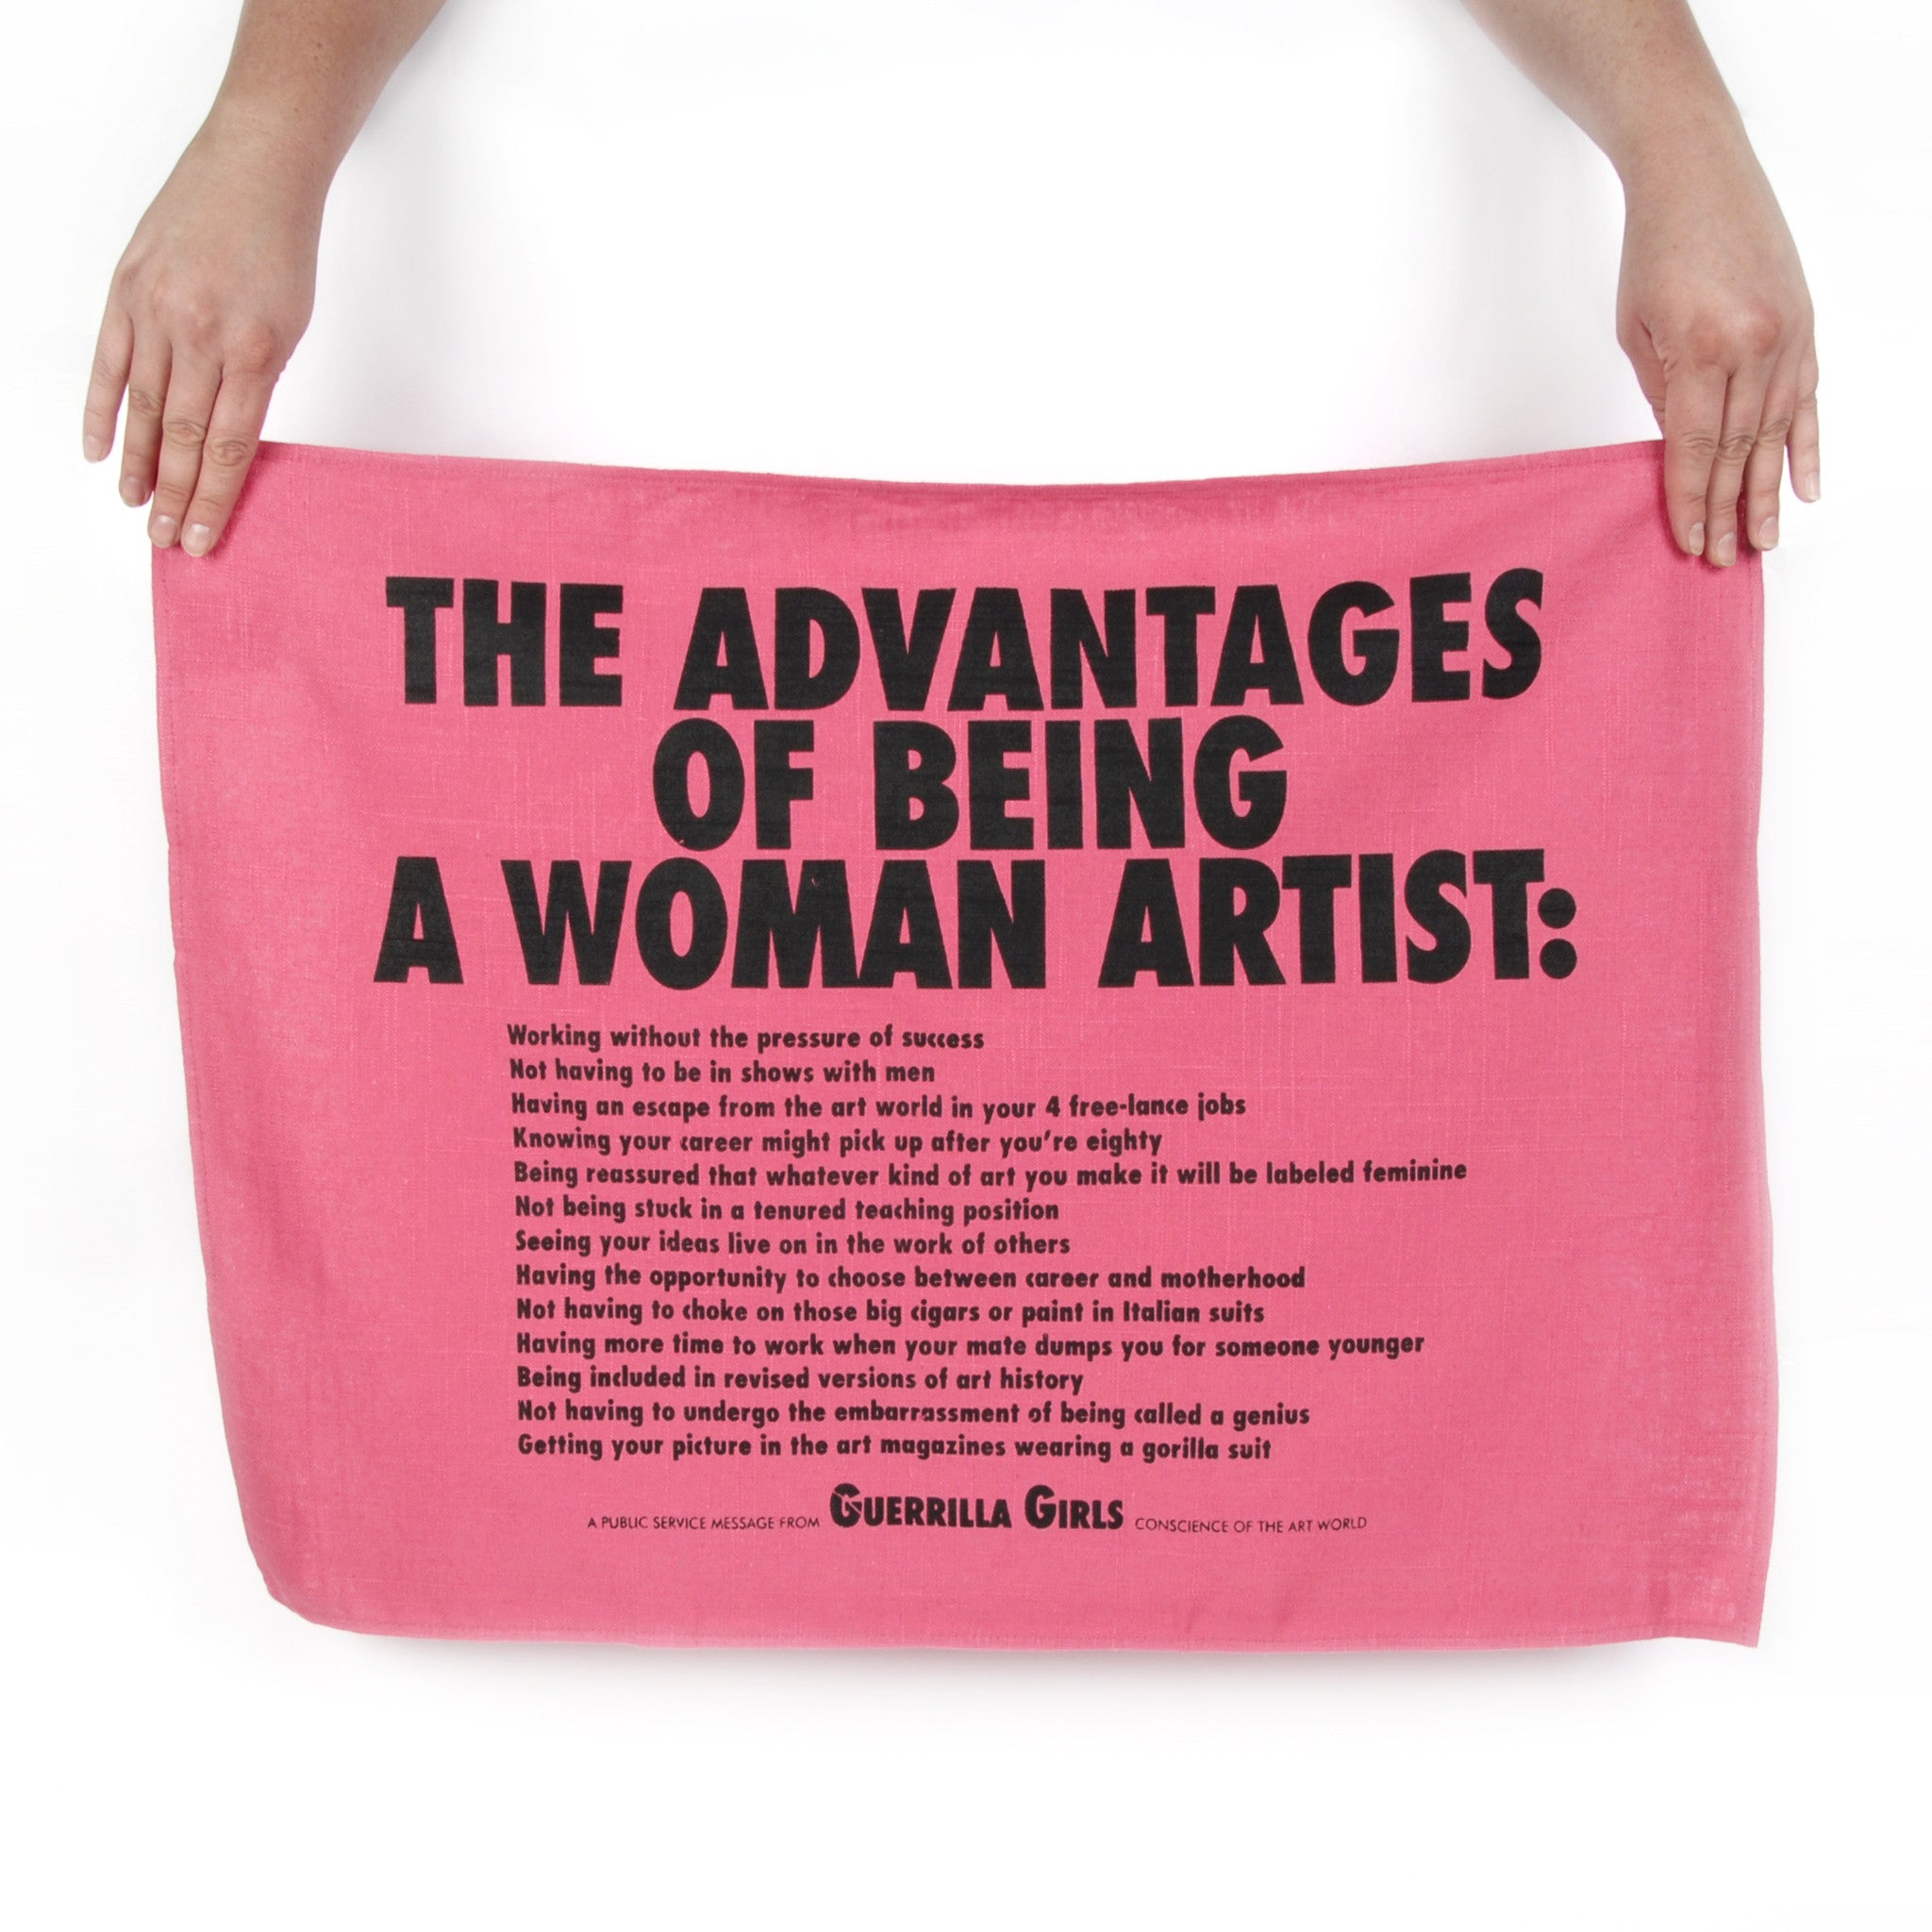 Guerrilla Girls Advantages Tea Towel Image